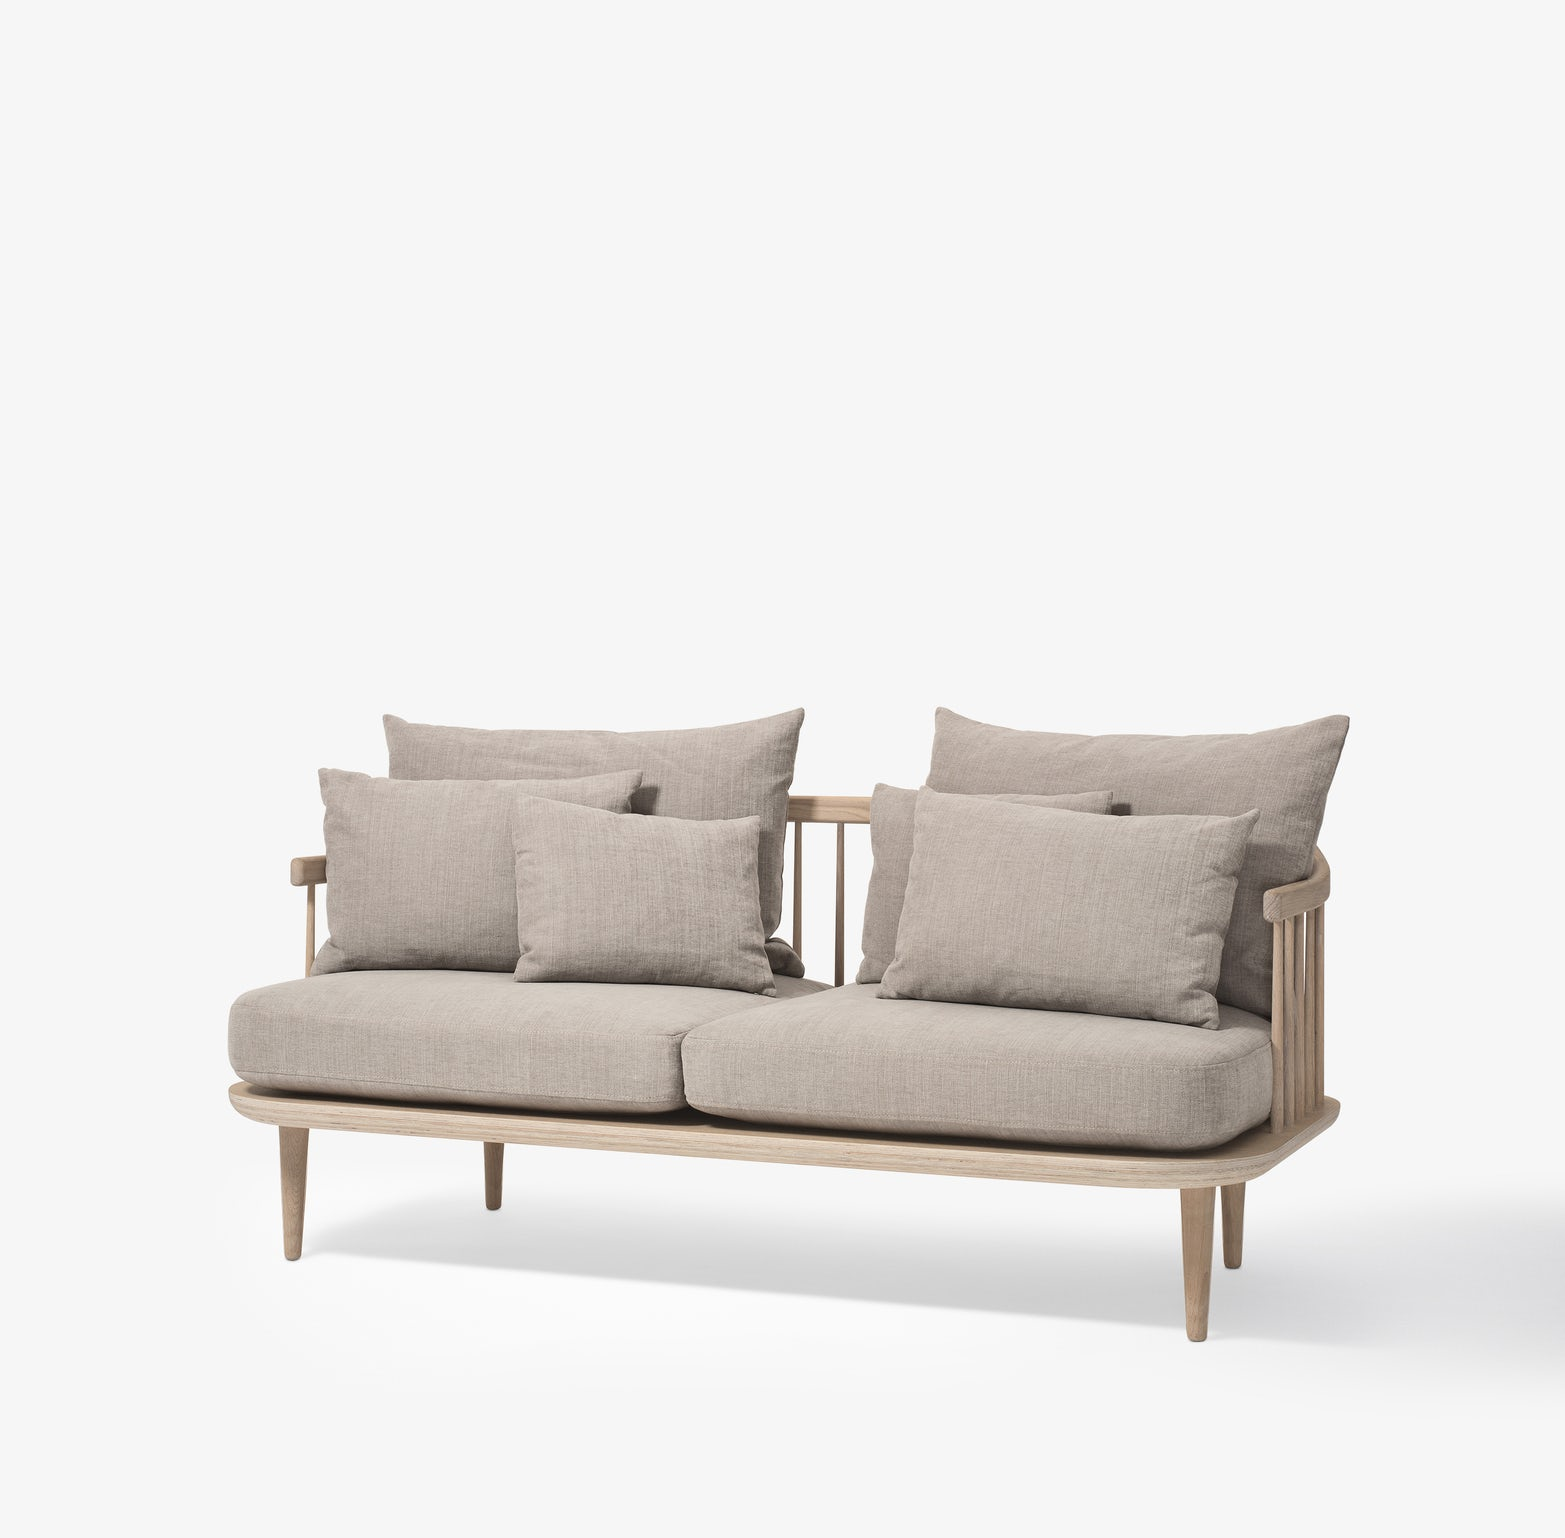 Fly sofa SC2 space copenhagen and tradition 10